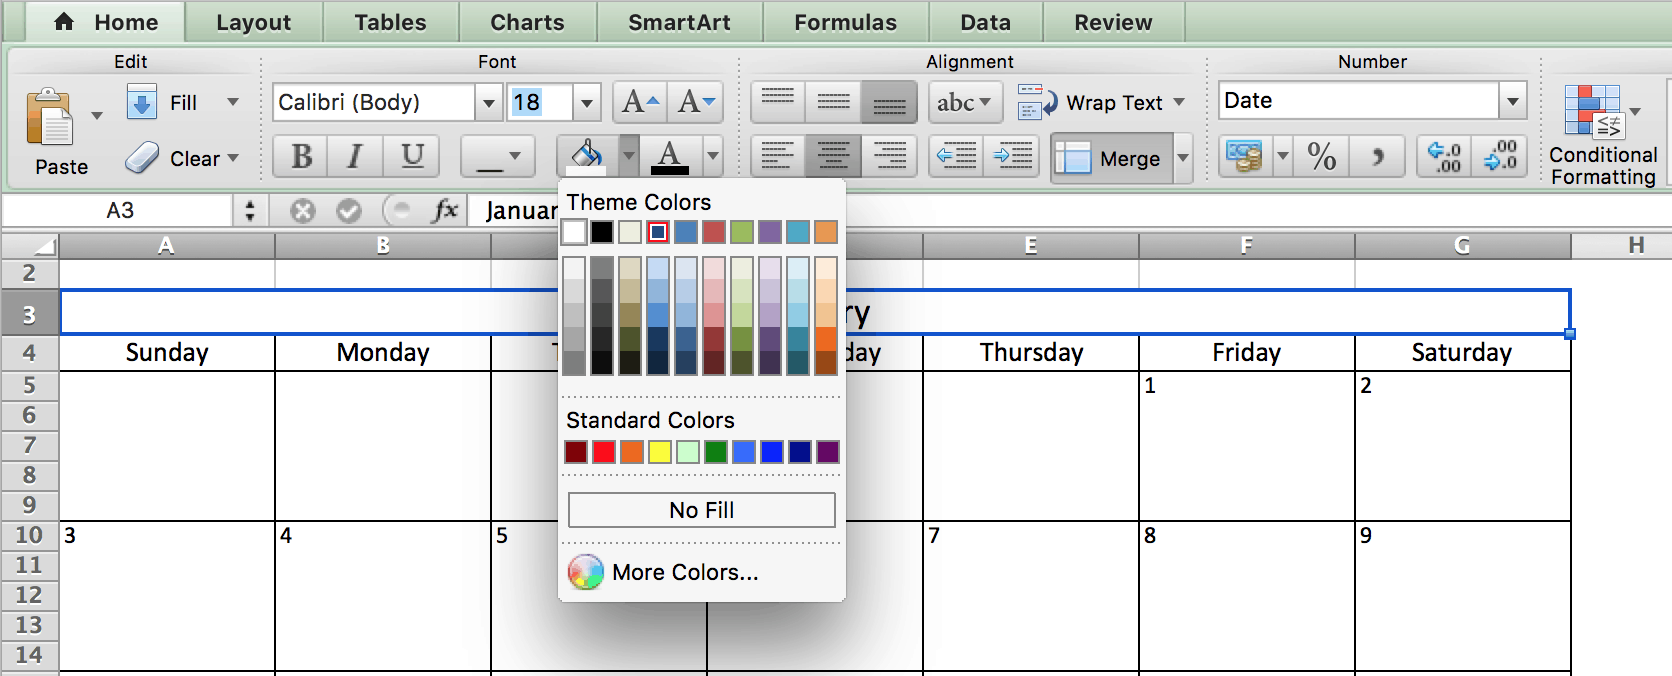 Ediblewildsus  Unusual Make A  Calendar In Excel Includes Free Template With Gorgeous Choosing Colors  Calendar In Excel With Lovely Text Formula Excel Also Status Bar Excel In Addition Lock Rows In Excel And How To Highlight Cells In Excel As Well As Excel Add Secondary Axis Additionally Exponential Smoothing Excel From Smartsheetcom With Ediblewildsus  Gorgeous Make A  Calendar In Excel Includes Free Template With Lovely Choosing Colors  Calendar In Excel And Unusual Text Formula Excel Also Status Bar Excel In Addition Lock Rows In Excel From Smartsheetcom